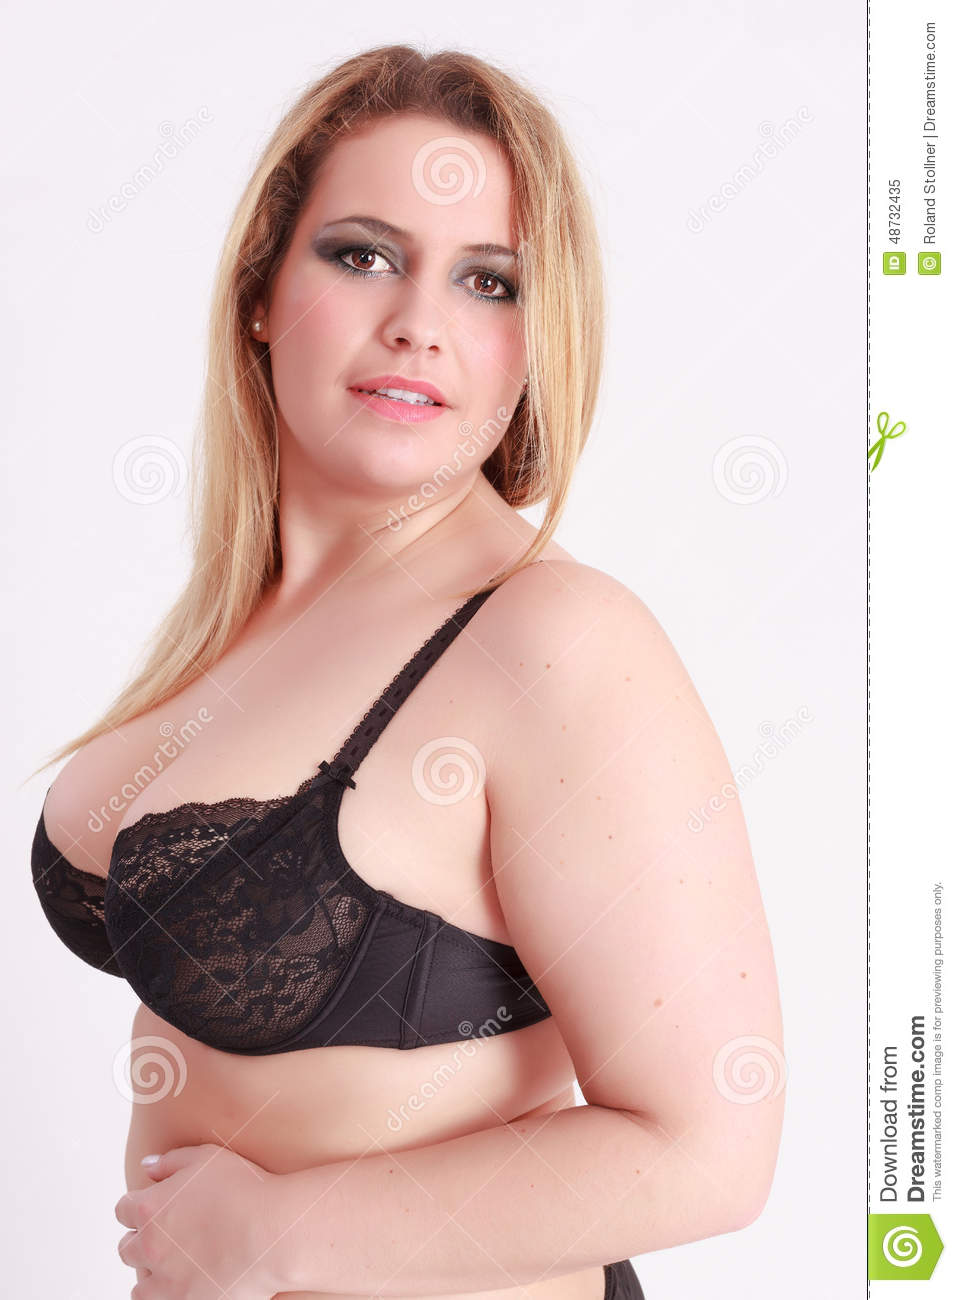 Can not Busty girl with bra topic simply